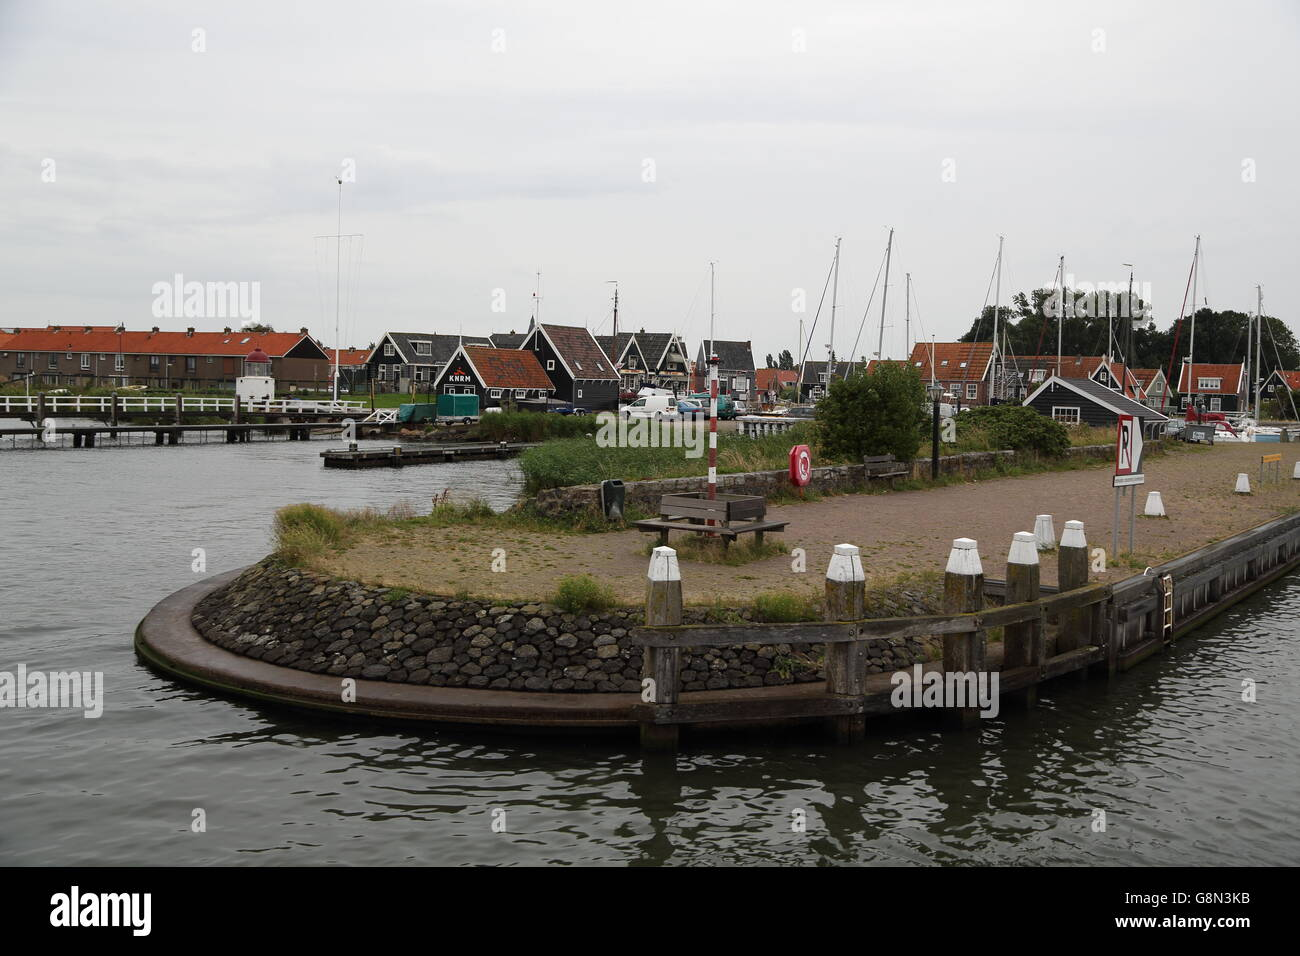 Arriving at Marken,Holland - Stock Image